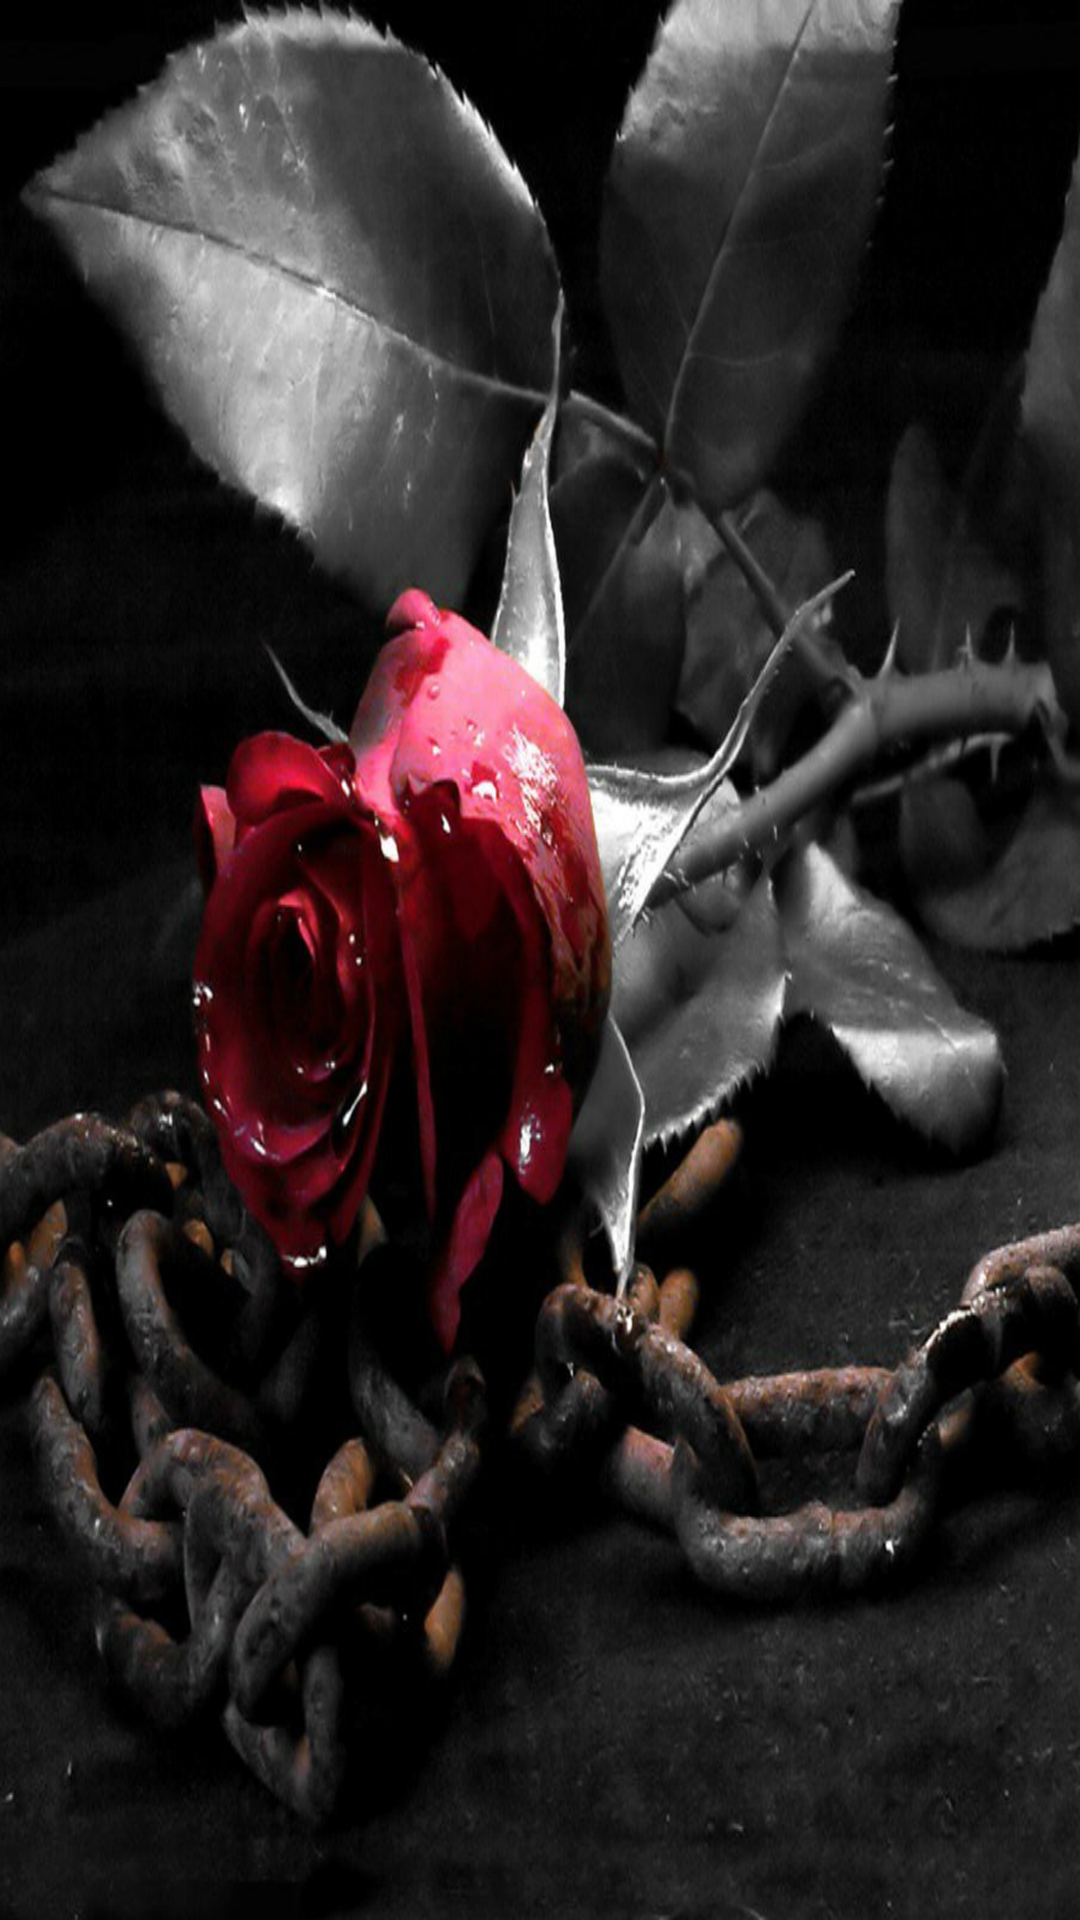 Rose wallpaper red rose in black and white iphone 5s hd - Black and red rose wallpaper ...